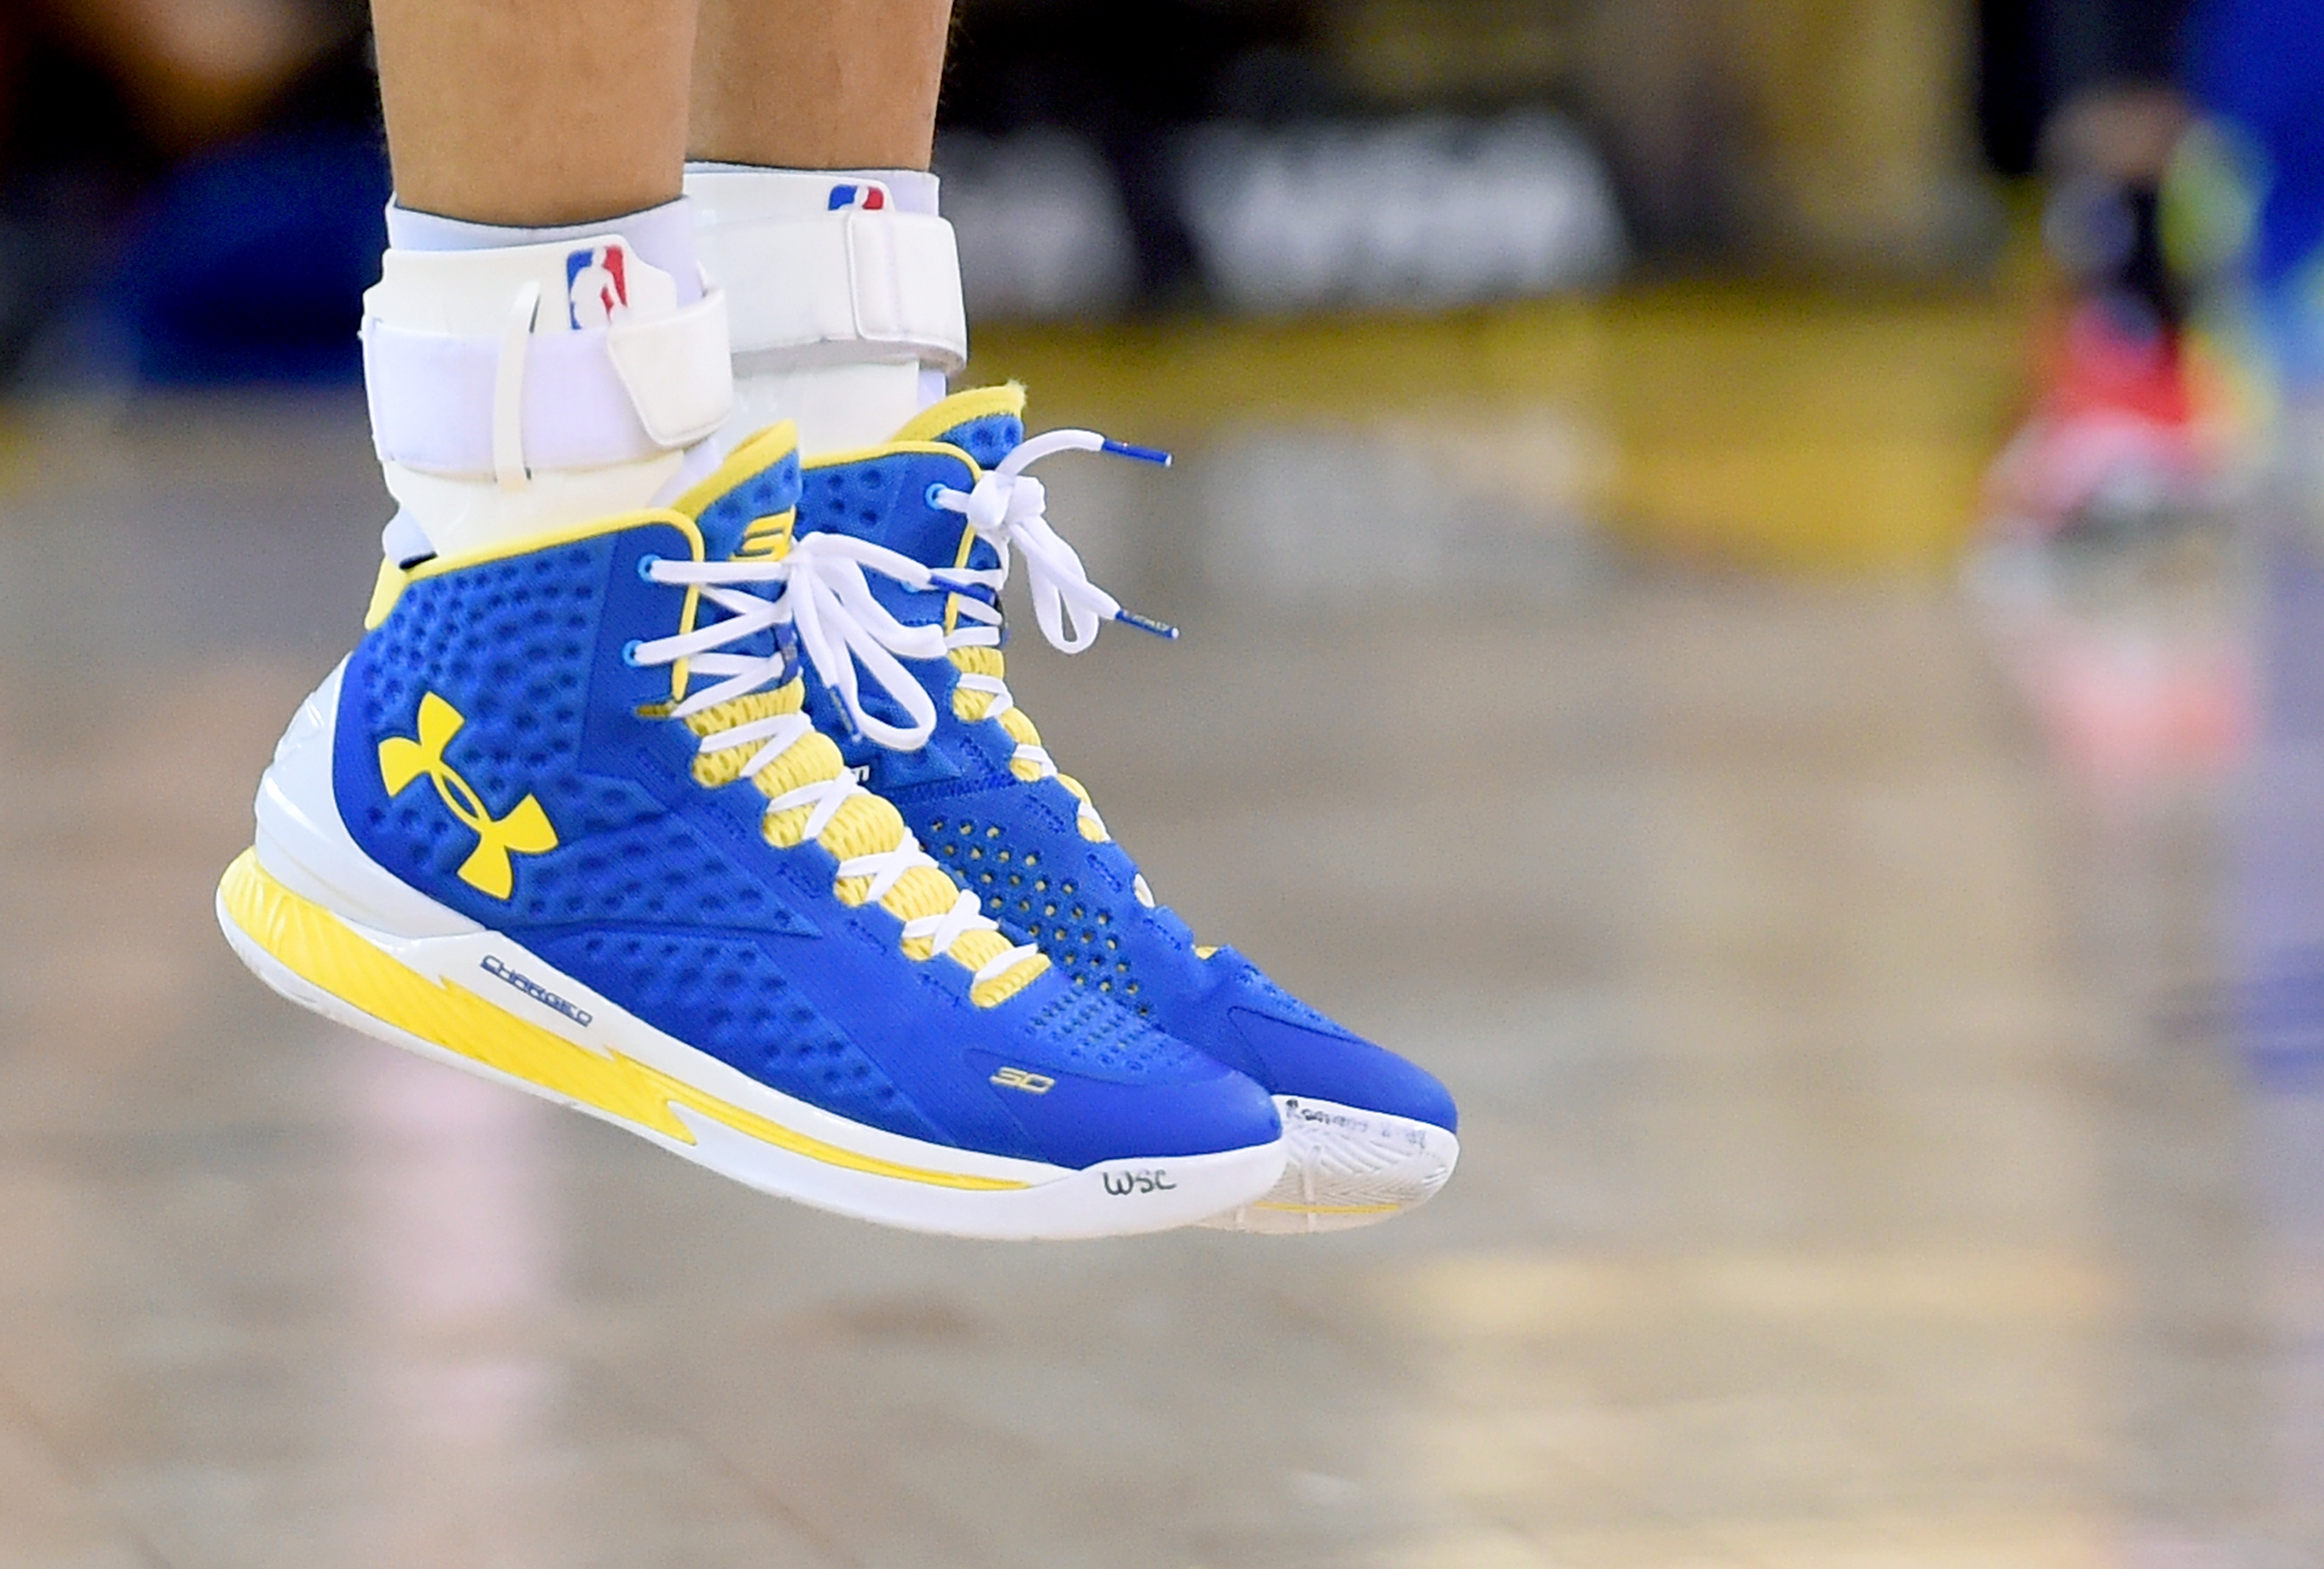 new product dbe5d 274b6 A detailed view of the Under Armour basketball shoes worn by Stephen Curry  of the Golden State Warriors against the Miami Heat at ORACLE Arena on Jan.